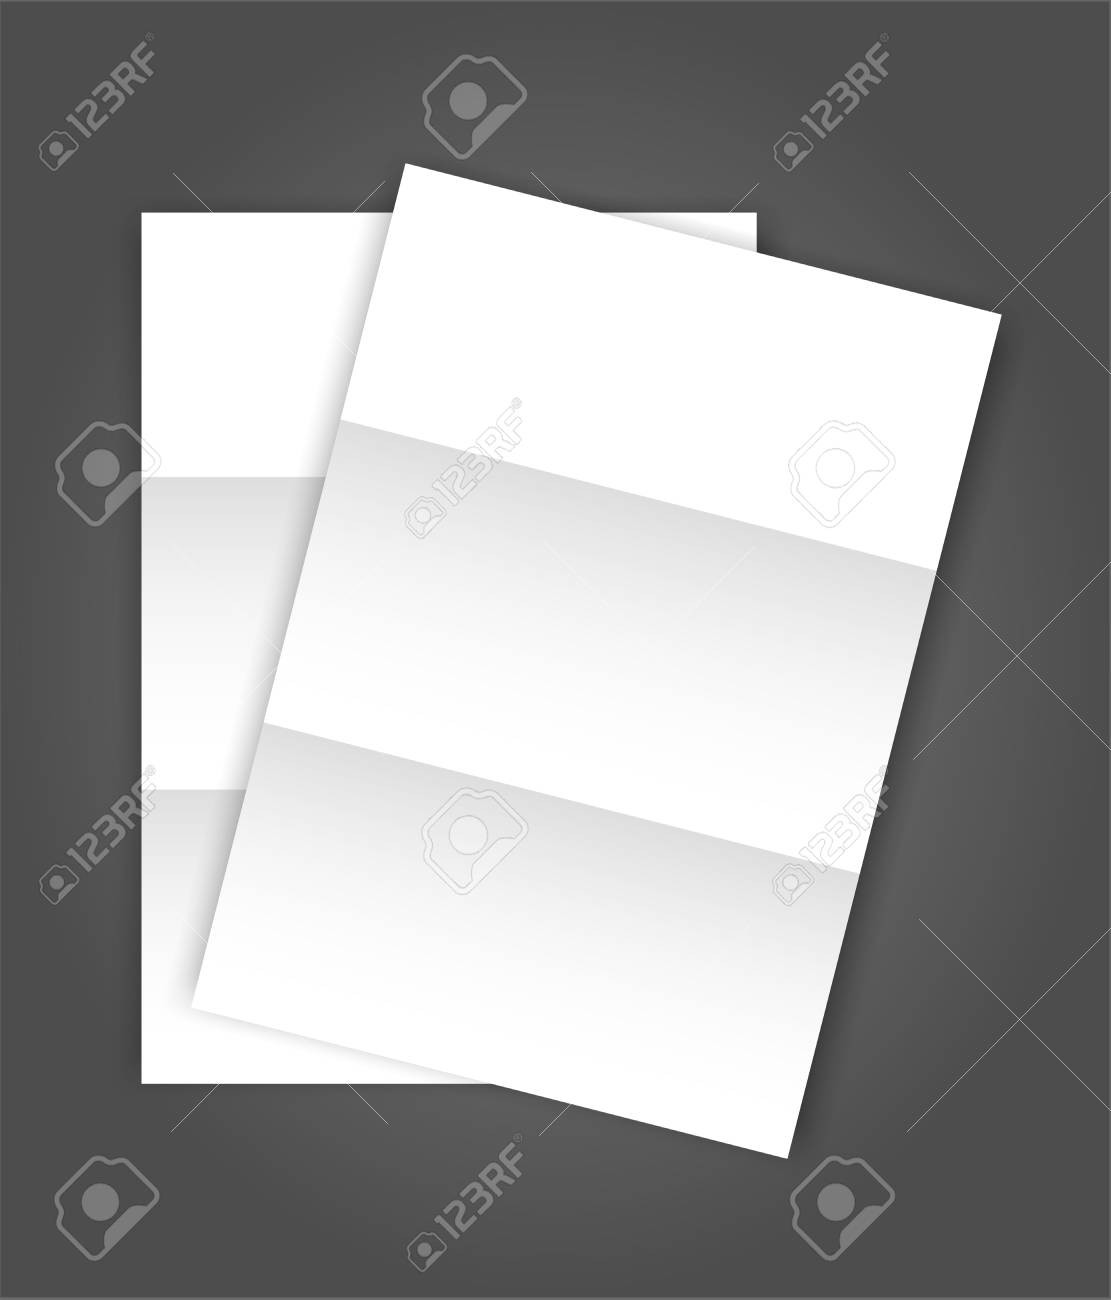 Set of two blank folded Paper Page blank A4 mockup